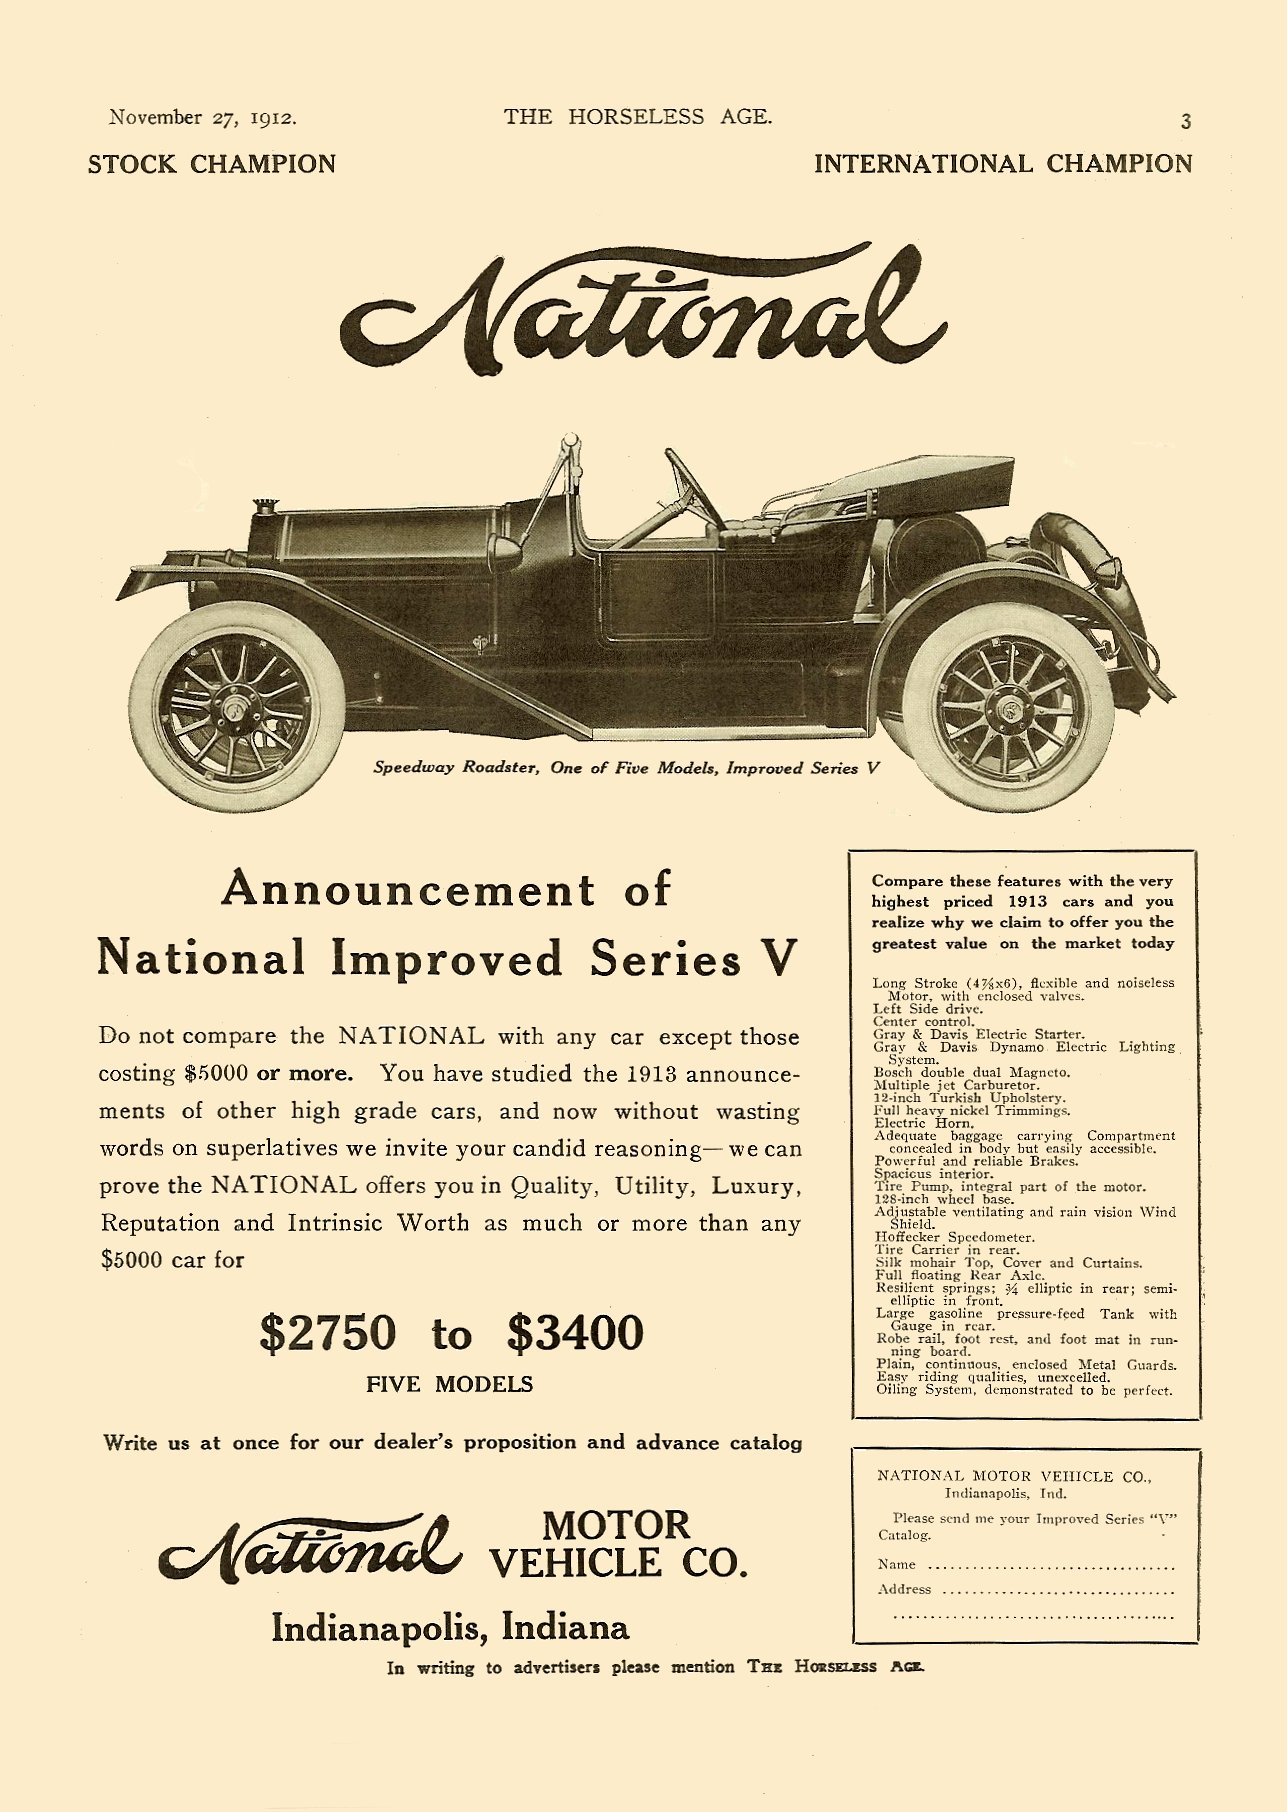 1913 11 27 NATIONAL Improved Series V THE HORSELESS AGE Vol. 30, No. 22 November 27, 1912 9″x12″ page 3